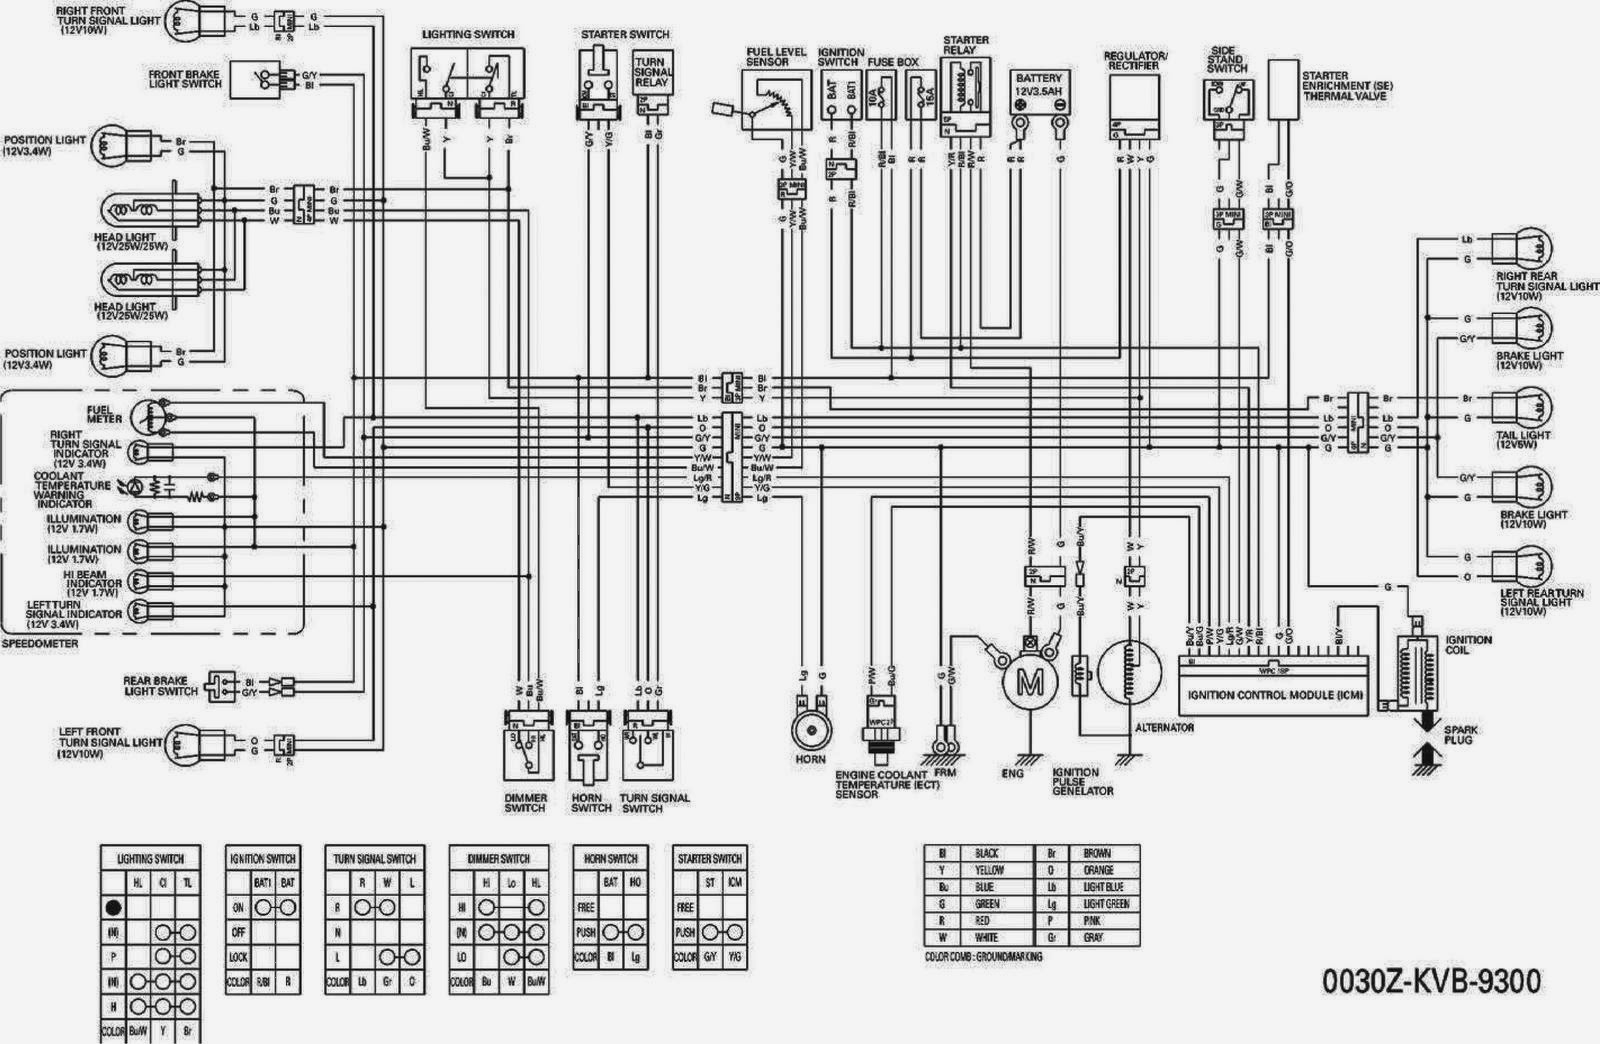 Wiring diagram for yamaha gp1300r wiring diagram for yamaha yamaha vega engine diagram yamaha free wiring diagrams wiring diagram ccuart Choice Image